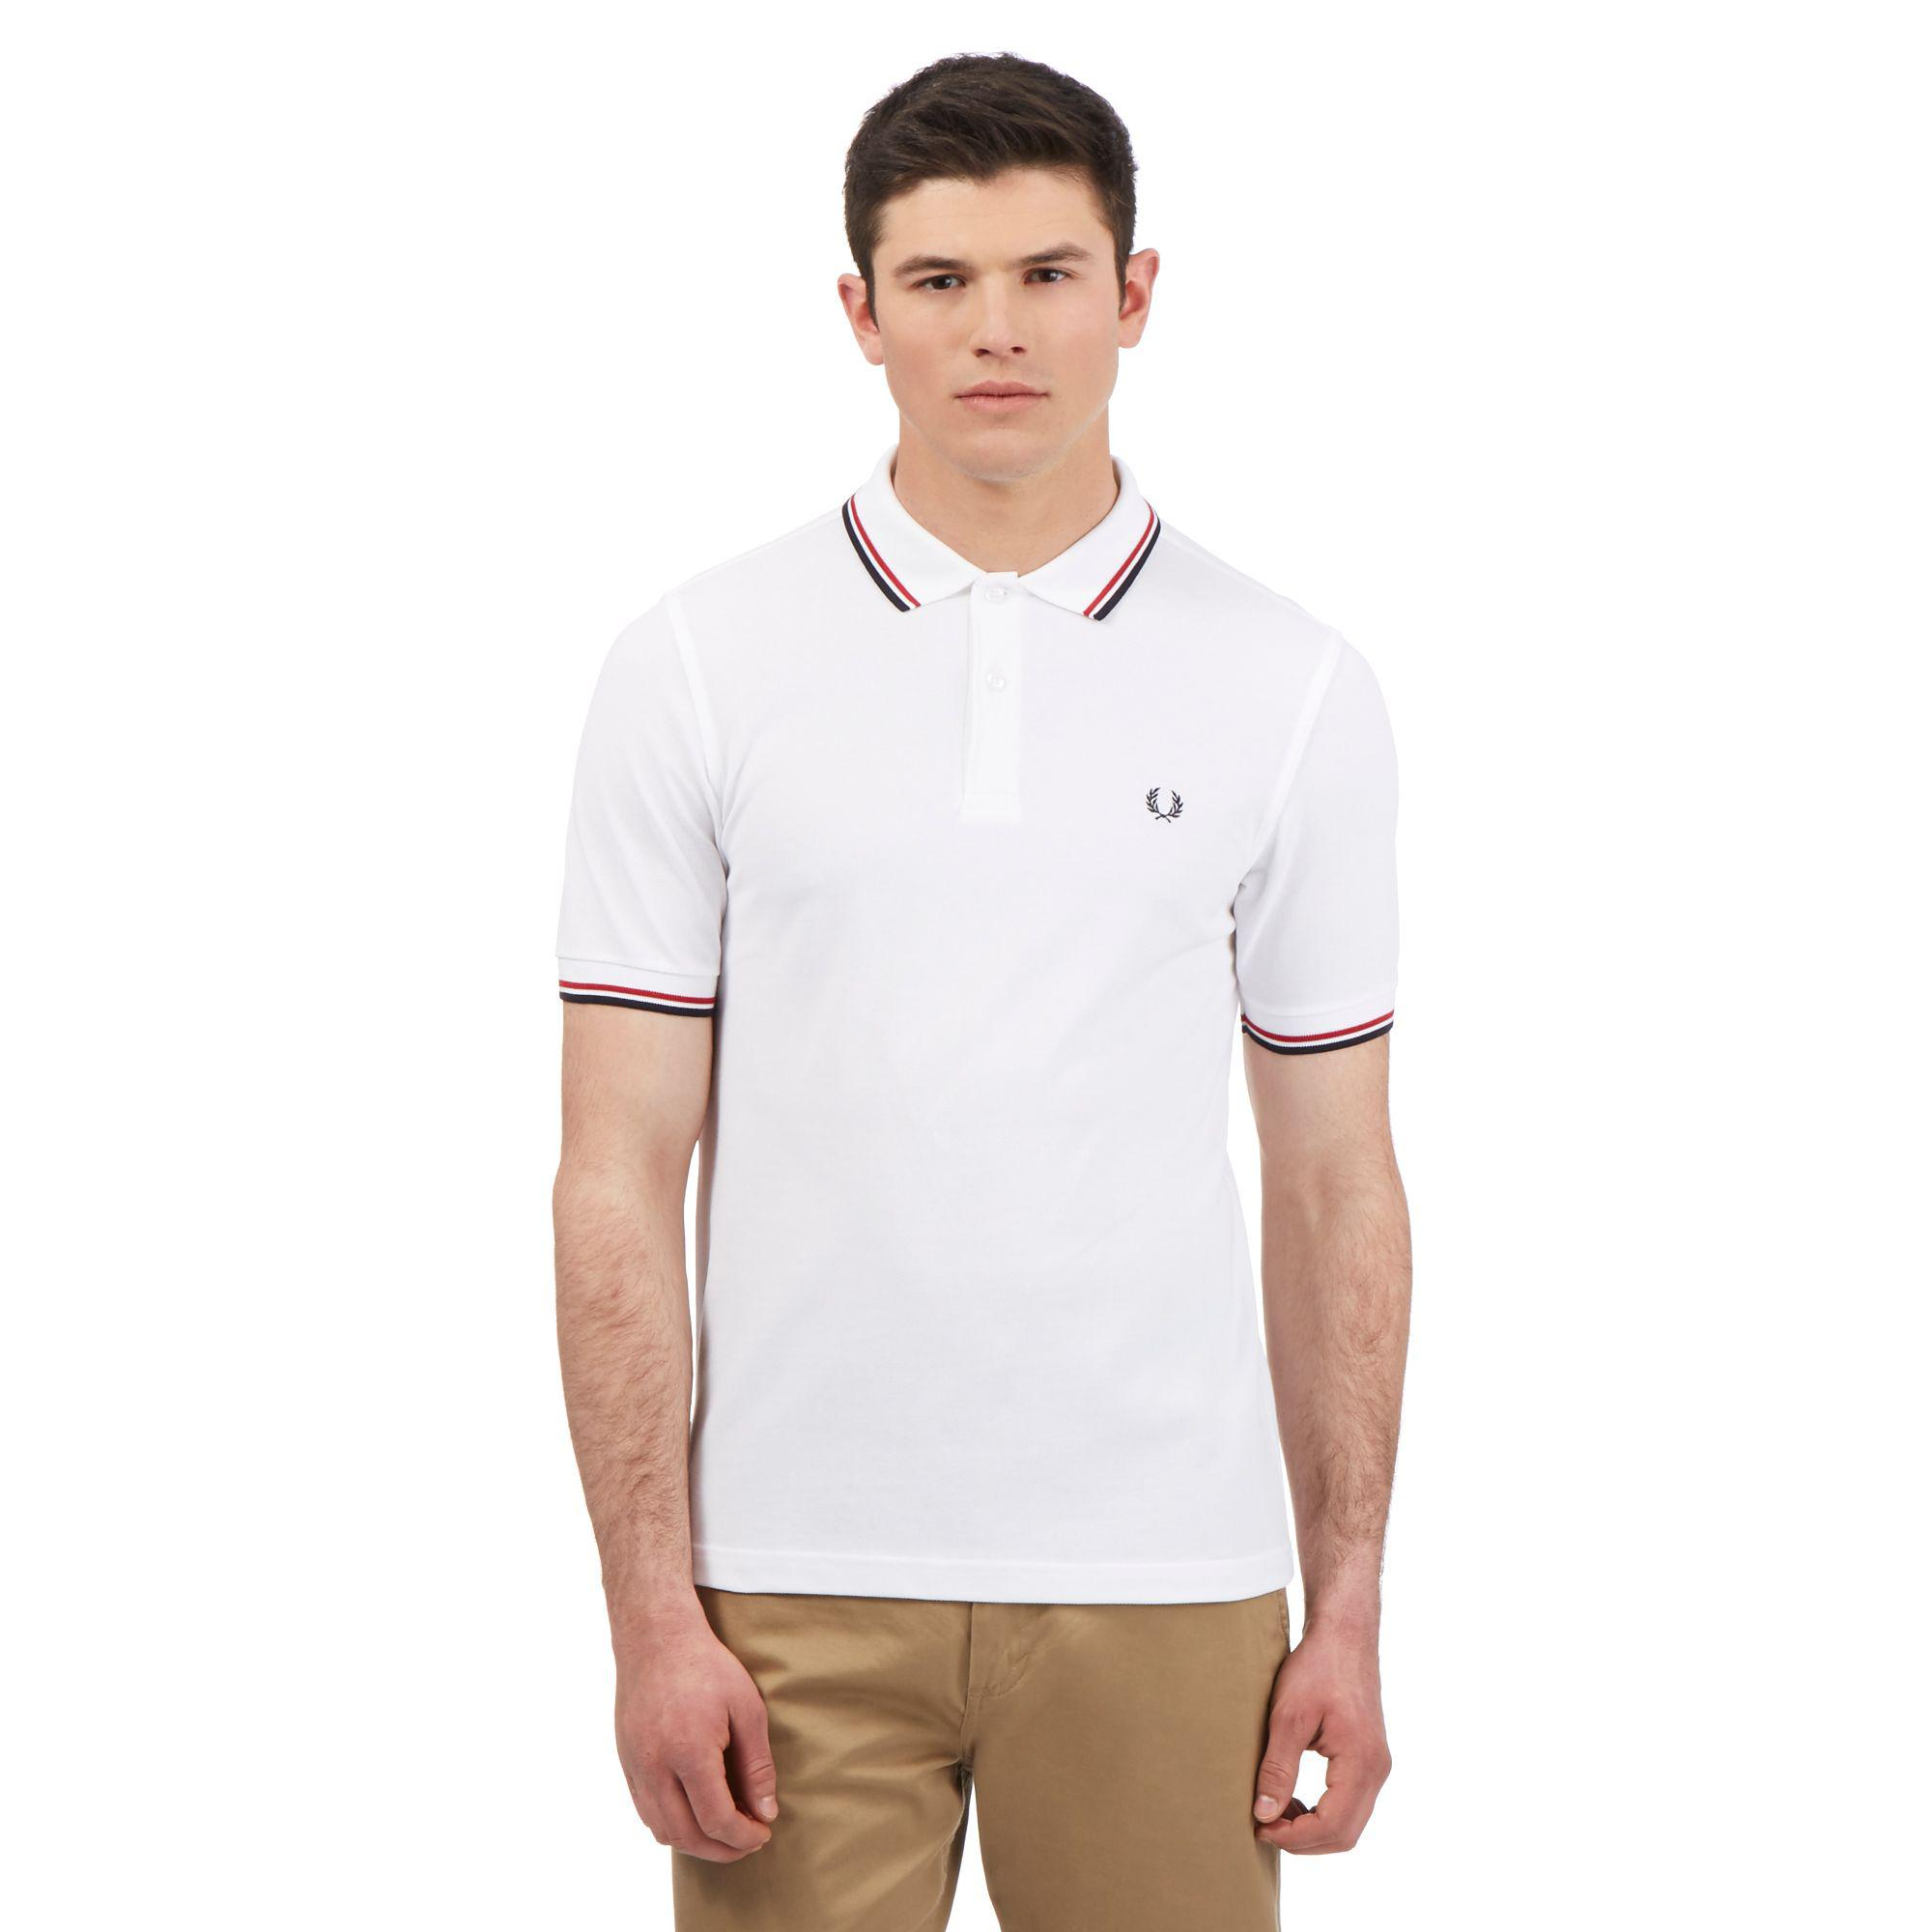 53d6bab42d9 Debenhams Menswear T Shirts – EDGE Engineering and Consulting Limited